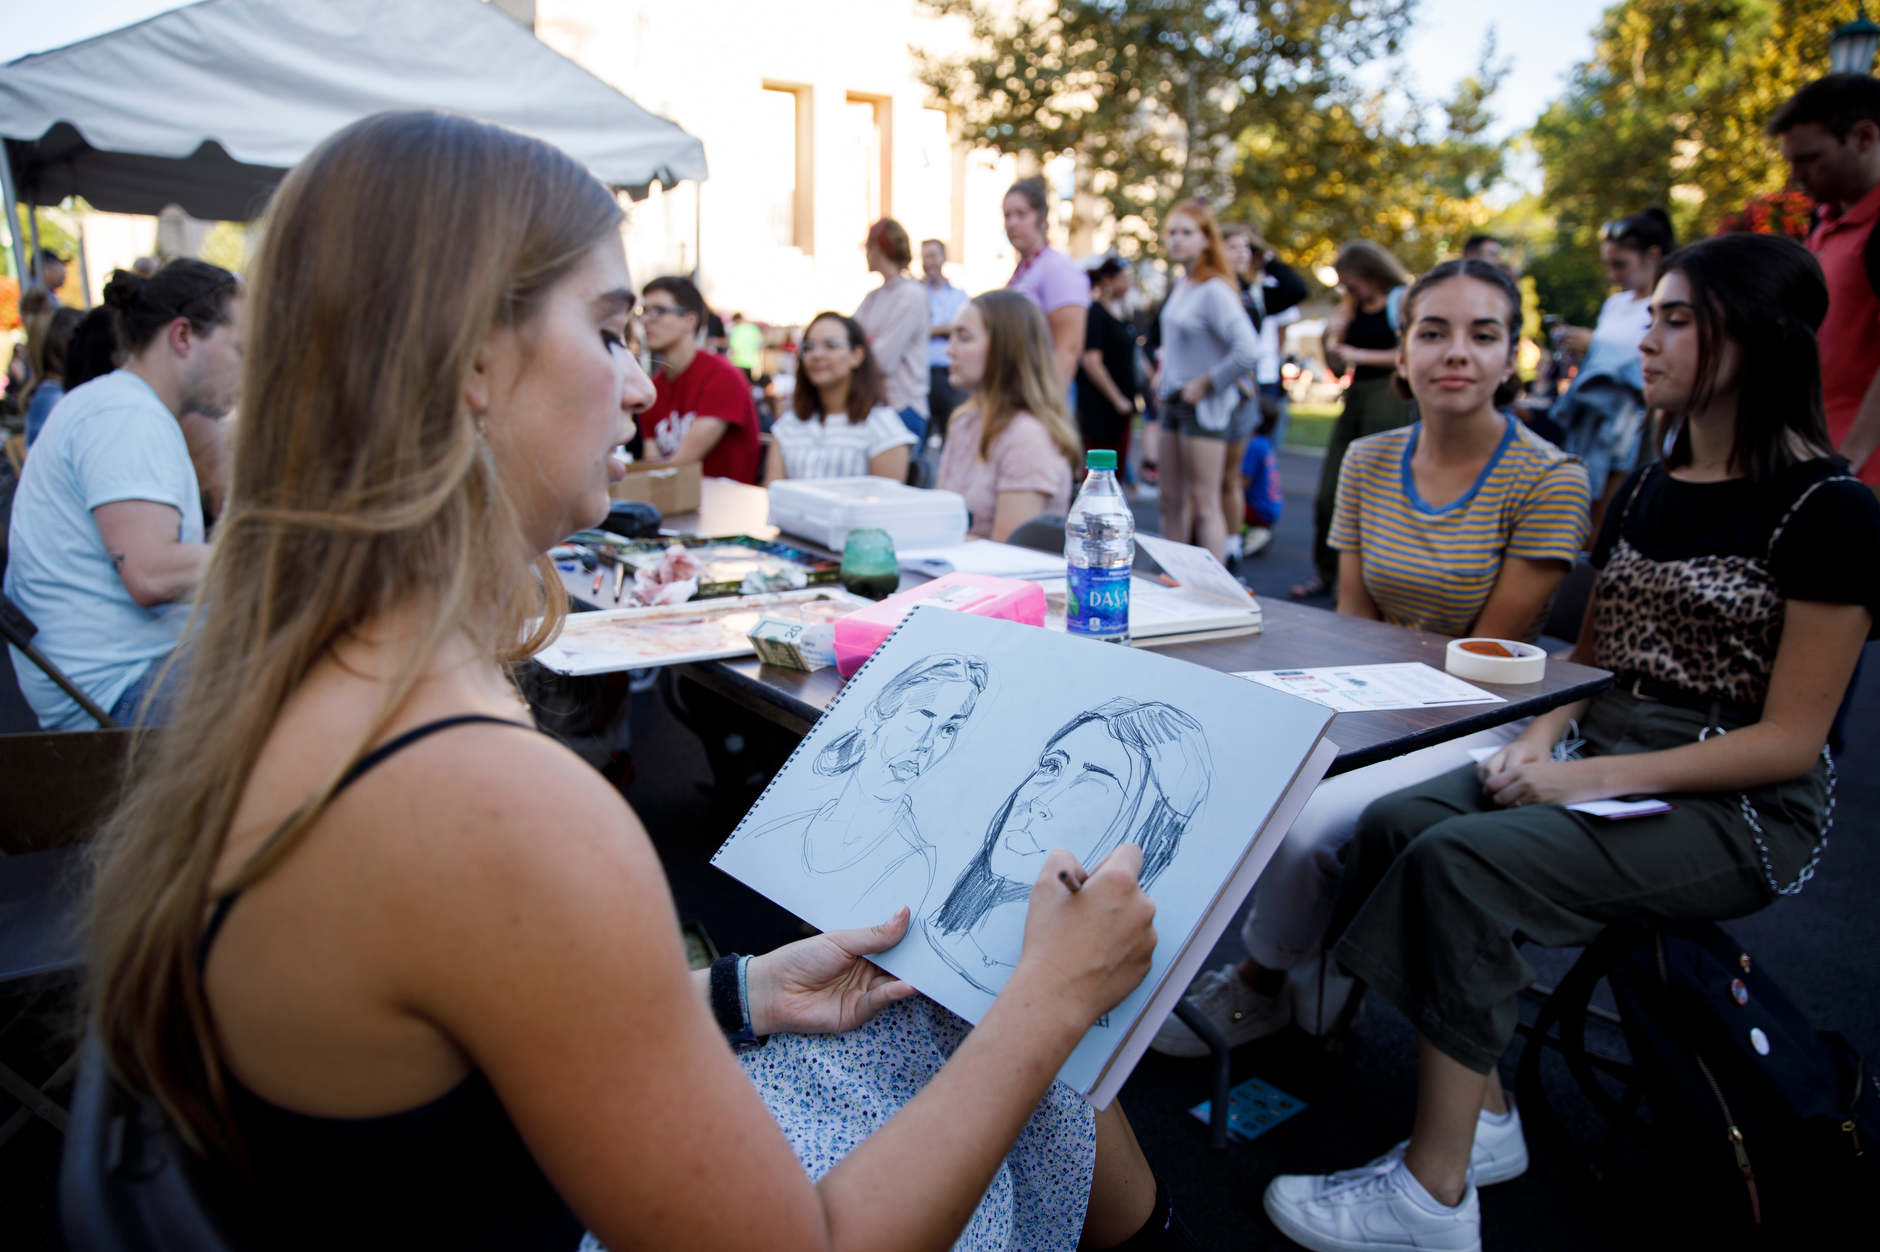 A portrait artist draws two students outside the Indiana University Eskenazi School of Art, Architecture + Design during the First Thursdays Festival on the Arts Plaza at IU Bloomington on Thursday, Sept. 5, 2019. (James Brosher/Indiana University)